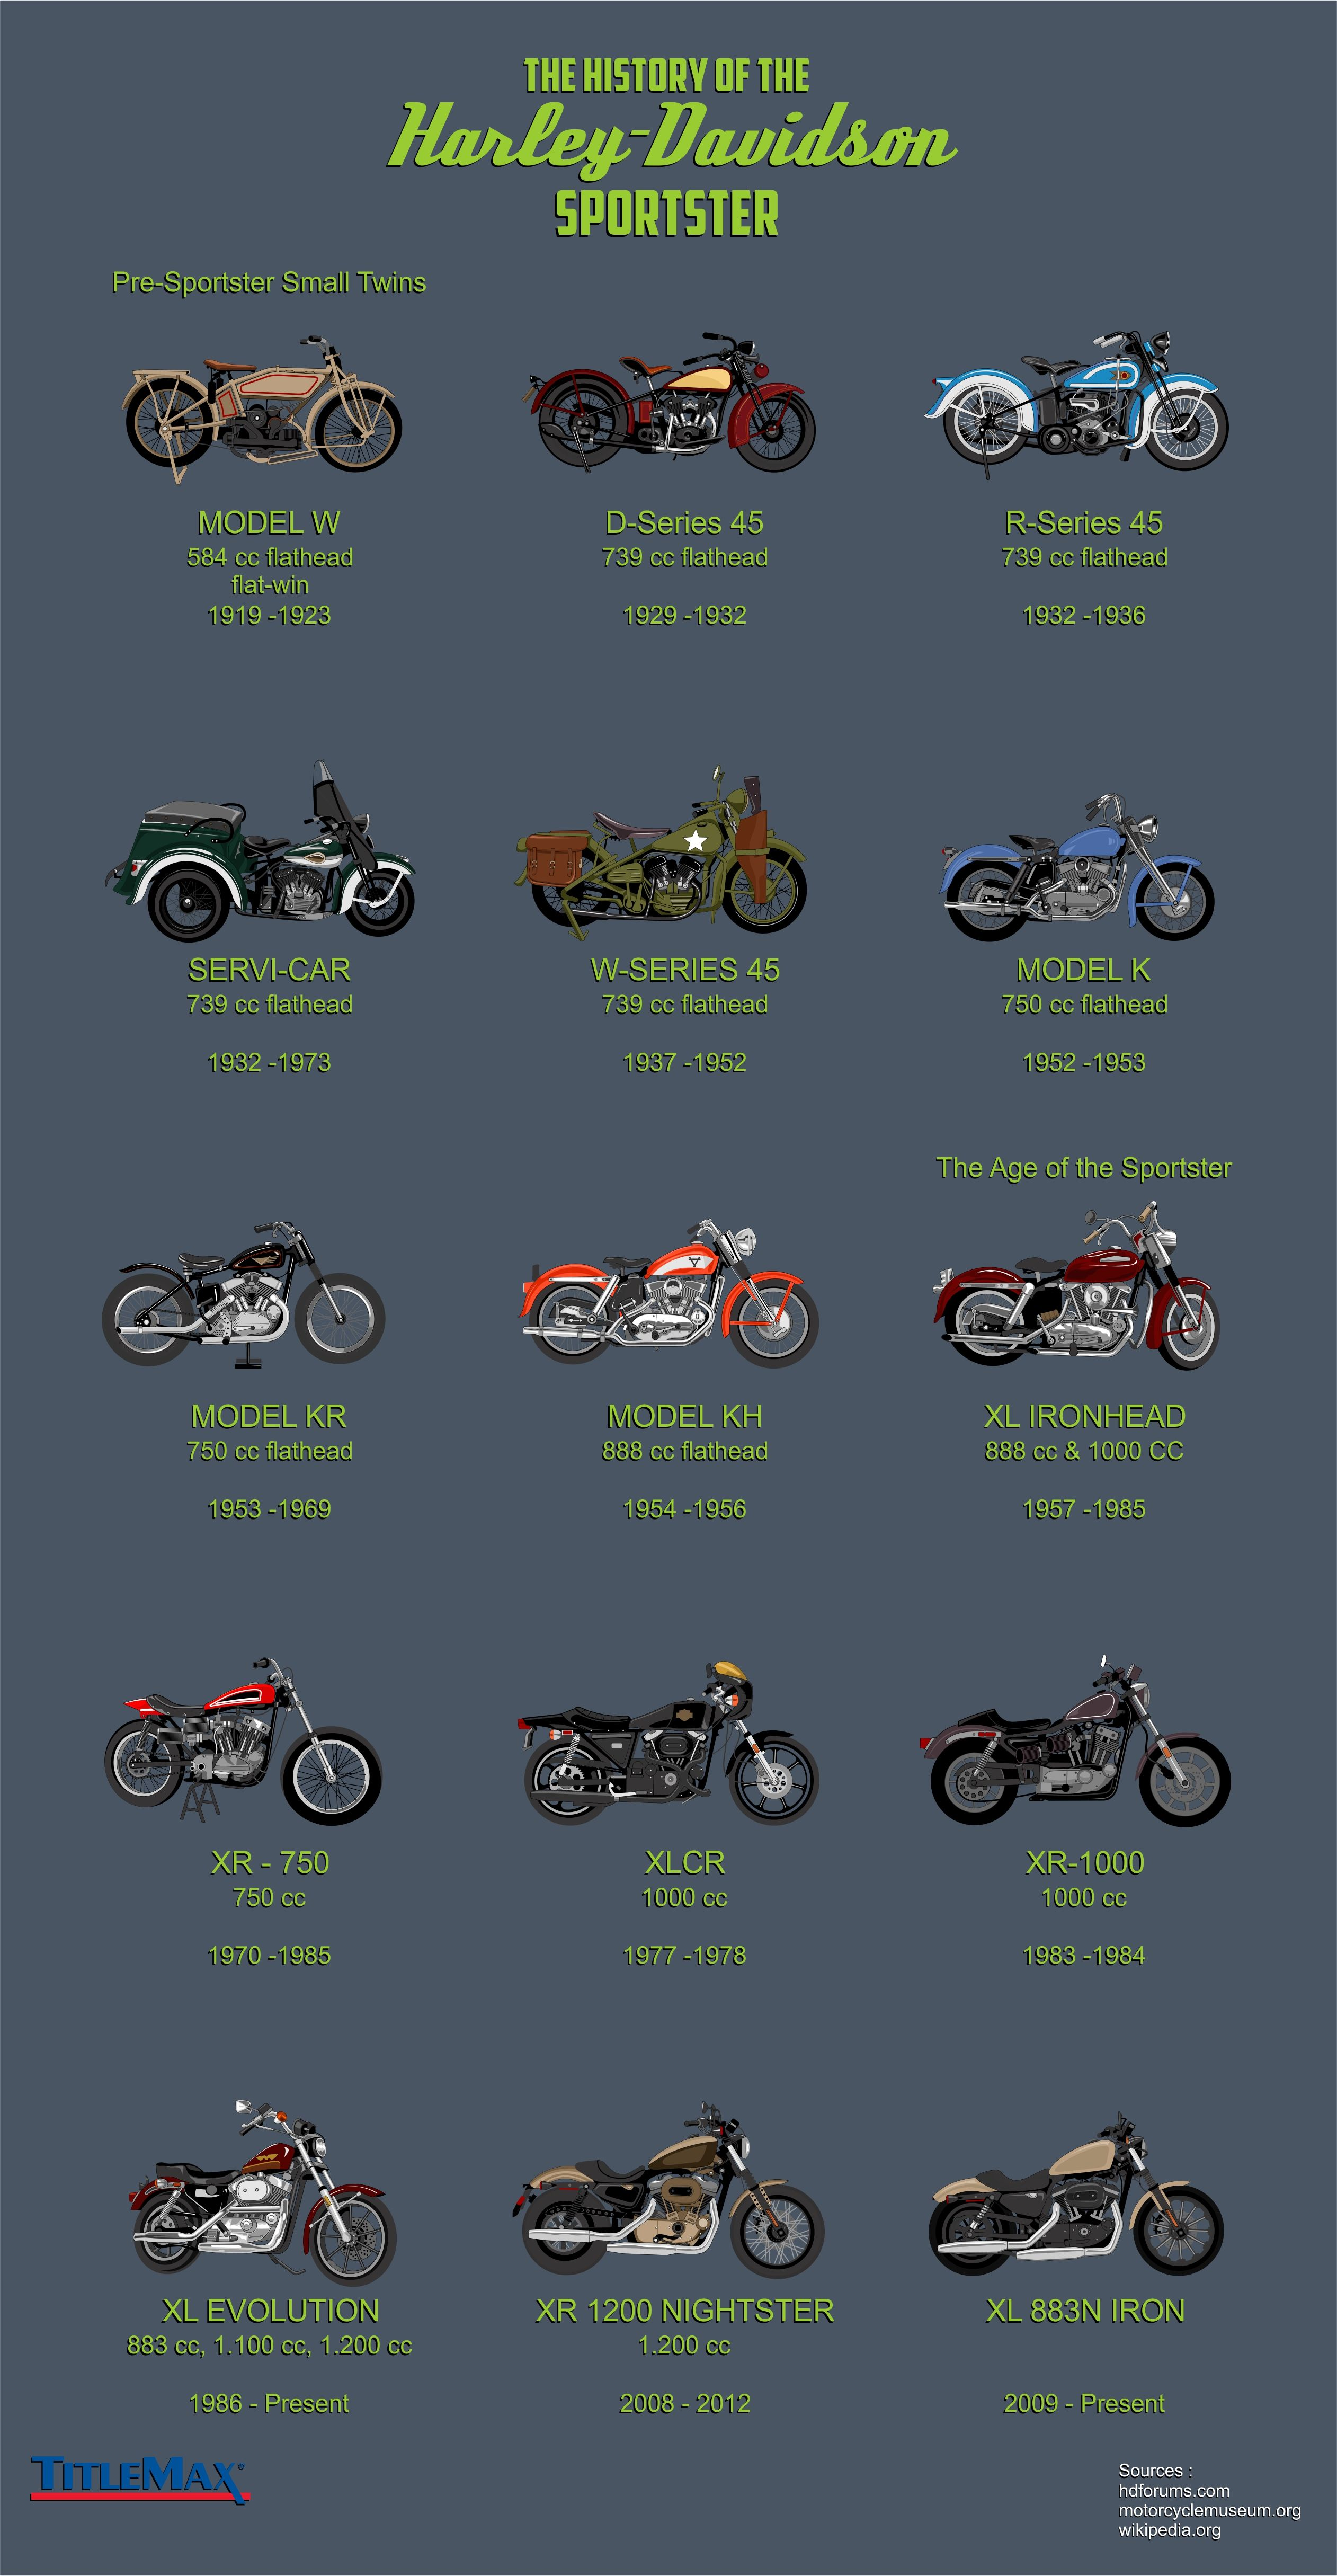 The History Of The Harley Davidson Sportster Infographic Harley Davidson Motorcycles Harley Davidson Sportster Motorcycle Harley